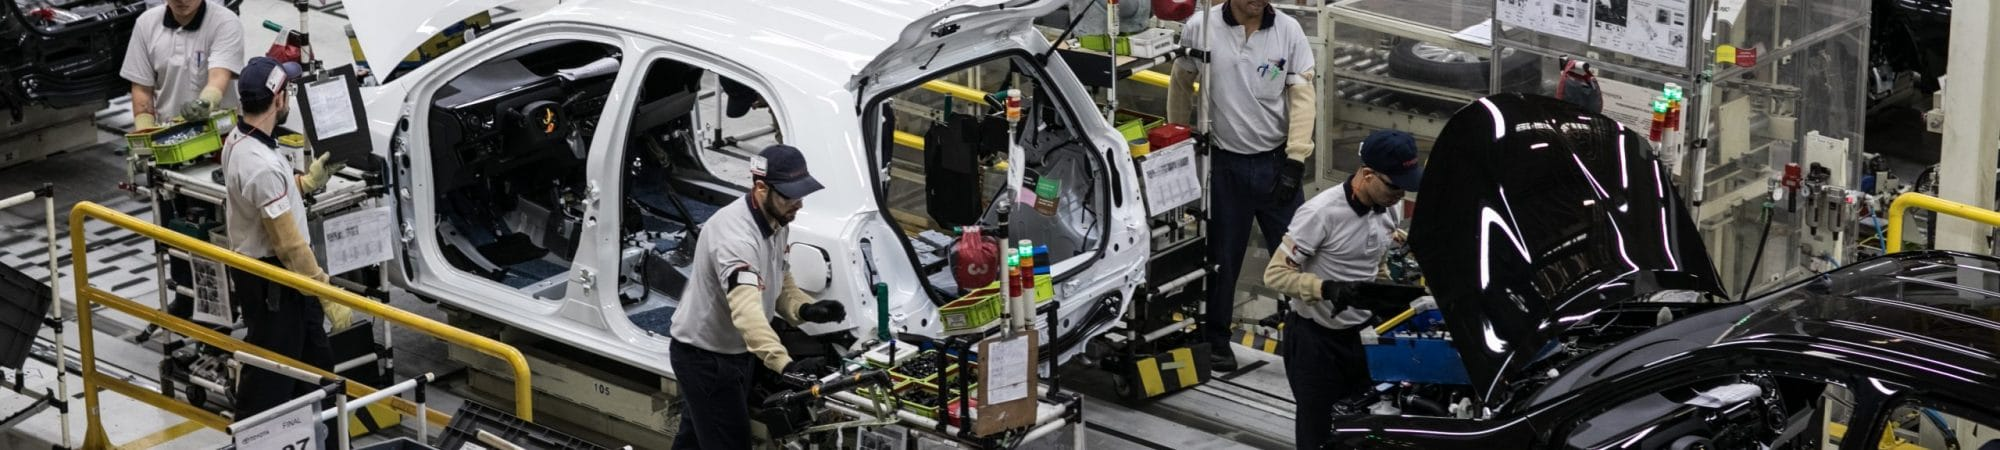 Toyota factory in Sorocaba (SP). Image: Toyota / Disclosure